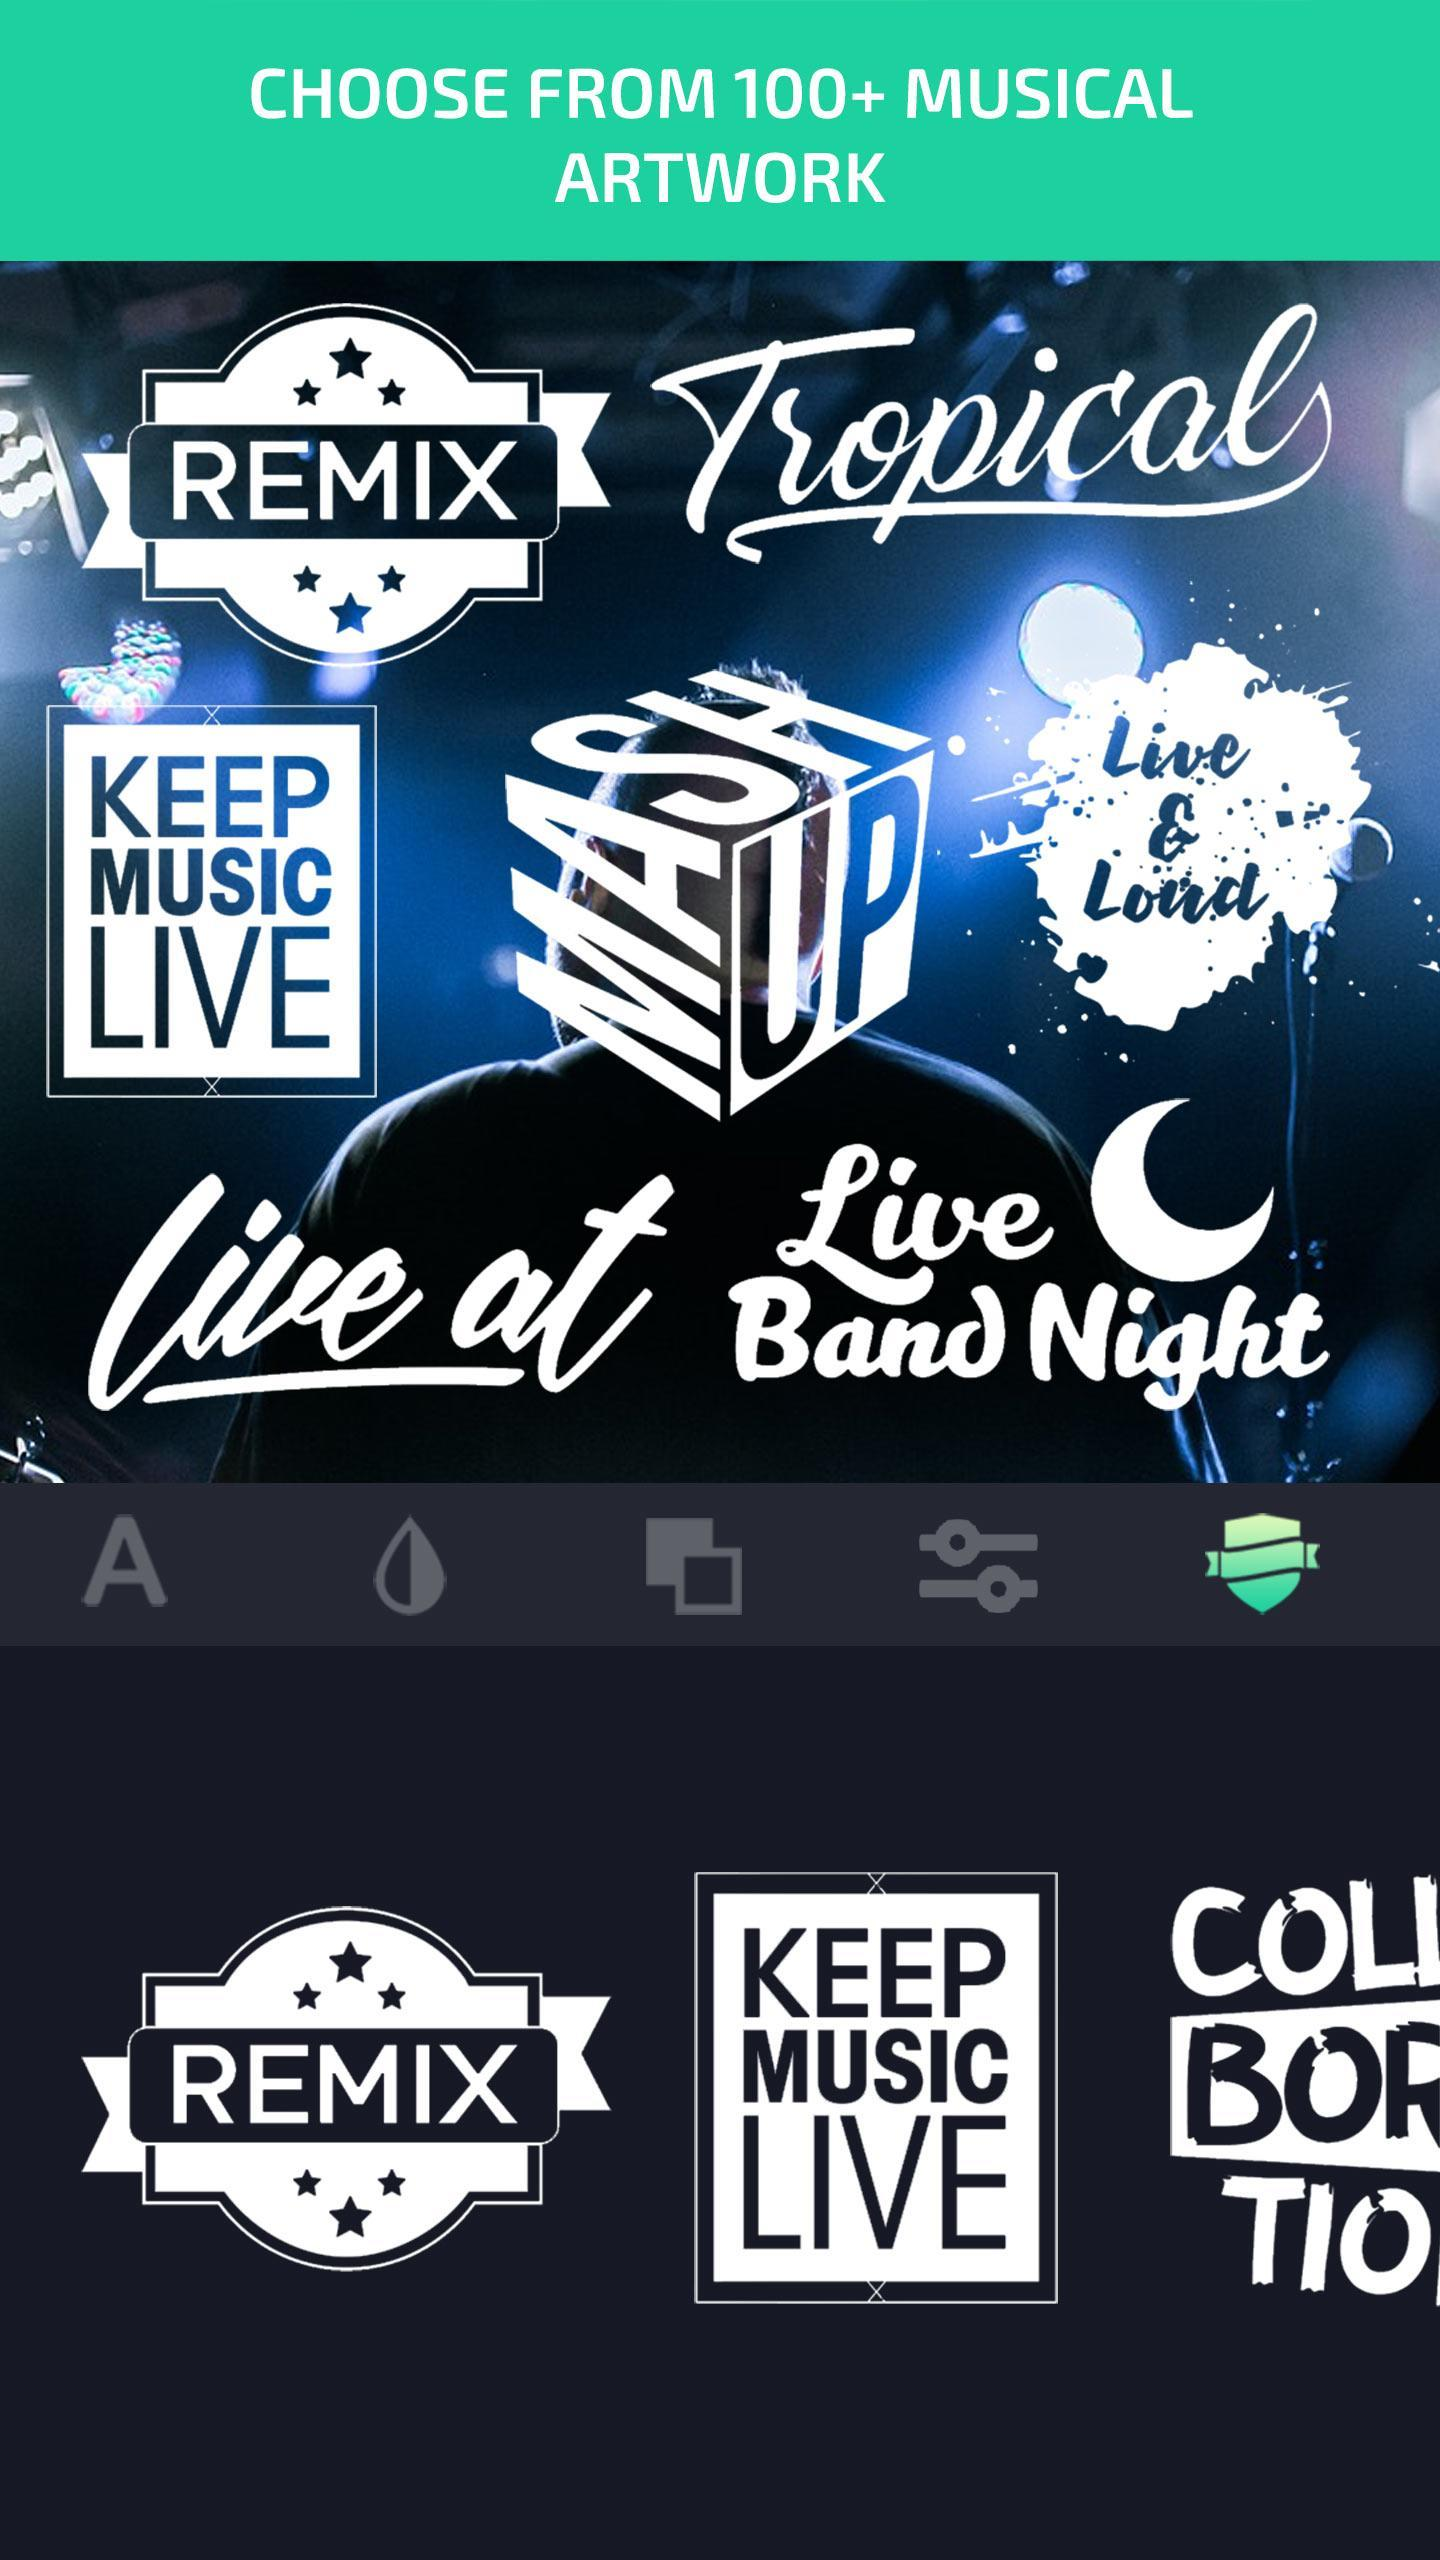 Album Cover Maker- Cover Art & Album Art for Android - APK